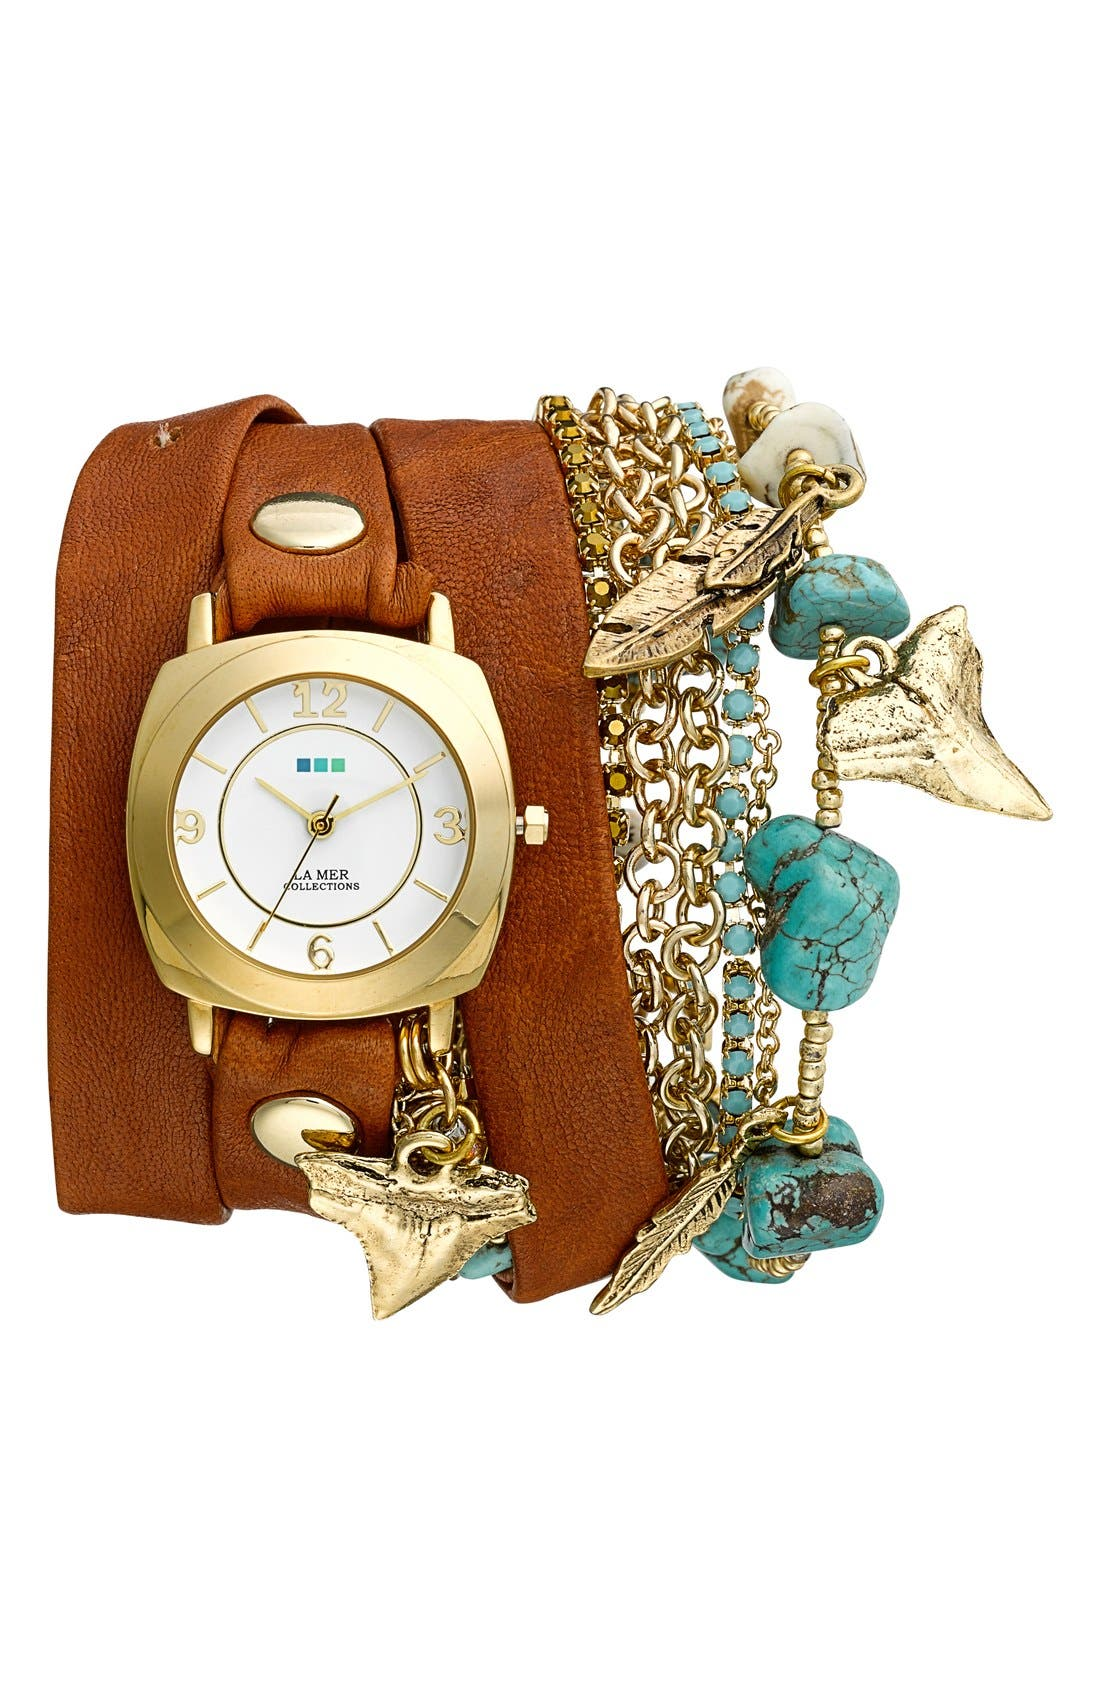 Alternate Image 1 Selected - La Mer Collections Leather & Chain Wrap Bracelet Watch, 35mm x 33mm